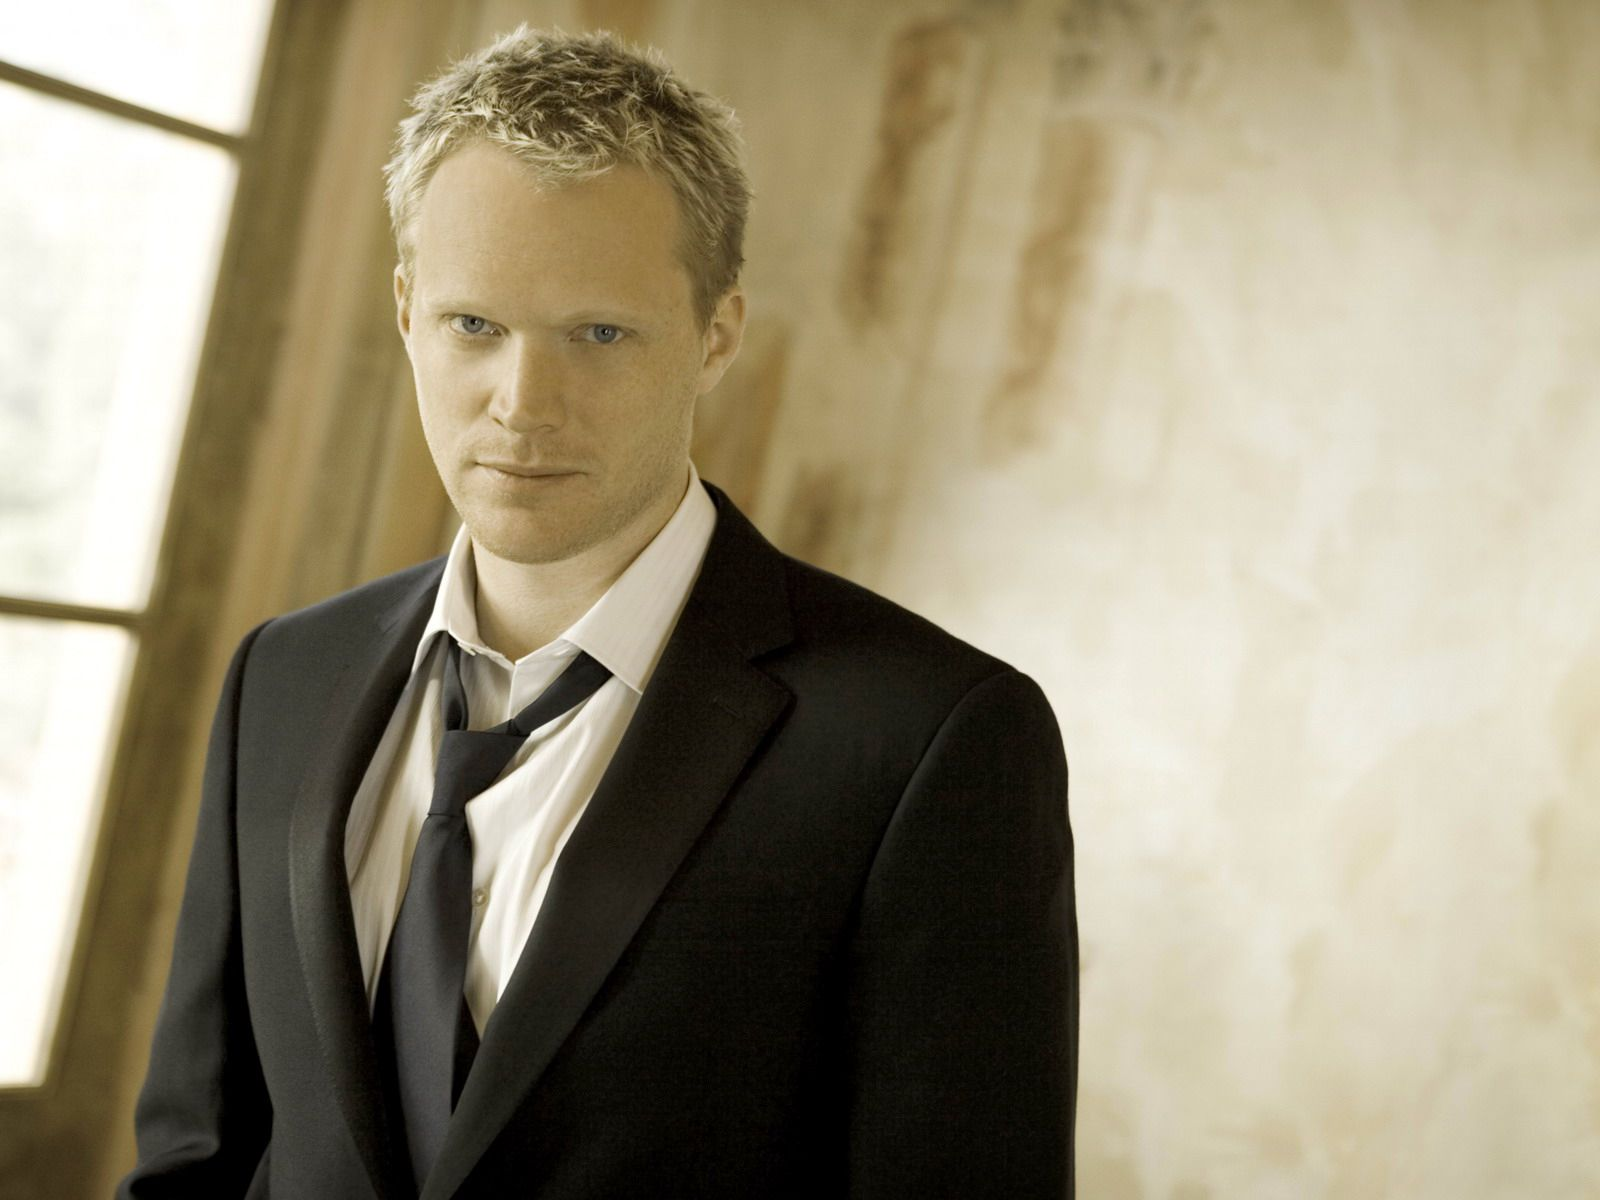 Paul Bettany. Love his acting.